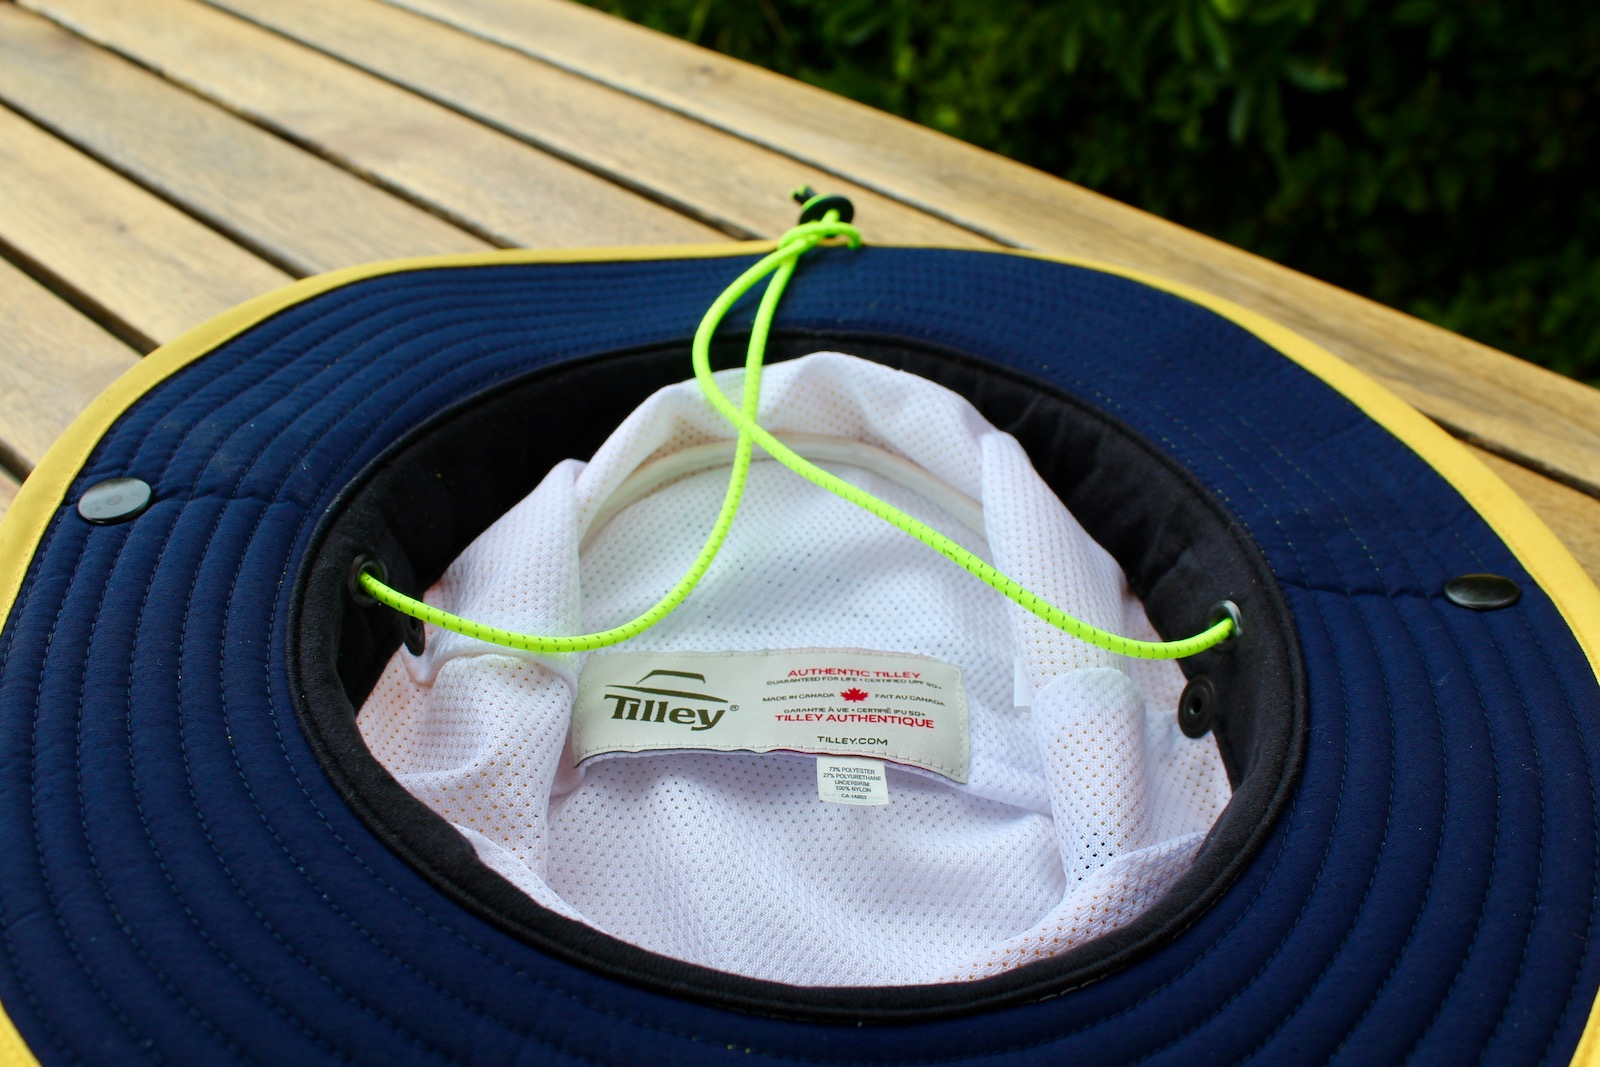 Tilley TWS1 Paddler's Brimmed Hat